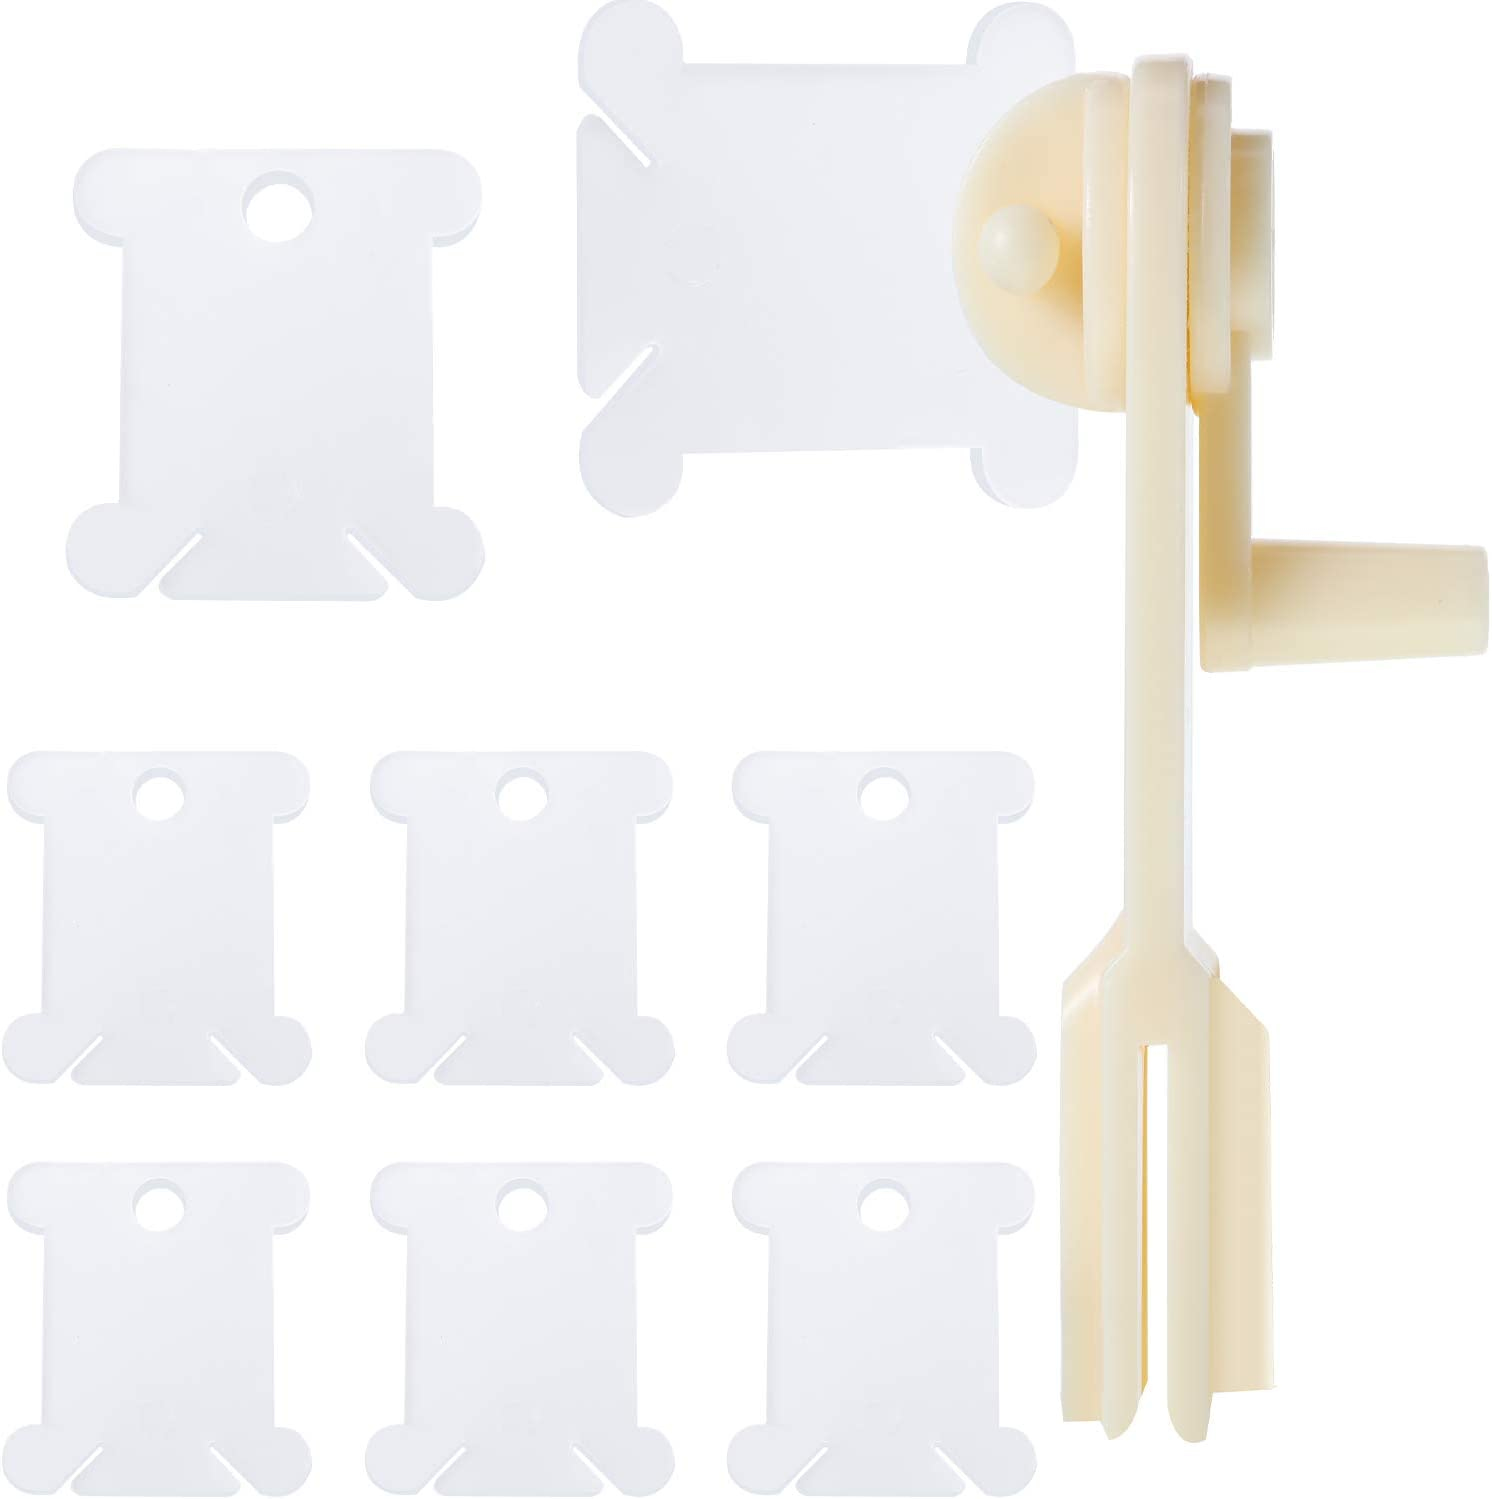 300 Pieces Plastic Floss Bobbins with Floss Winder for Embroidery Floss Organizer Cross-Stitch Thread Holder